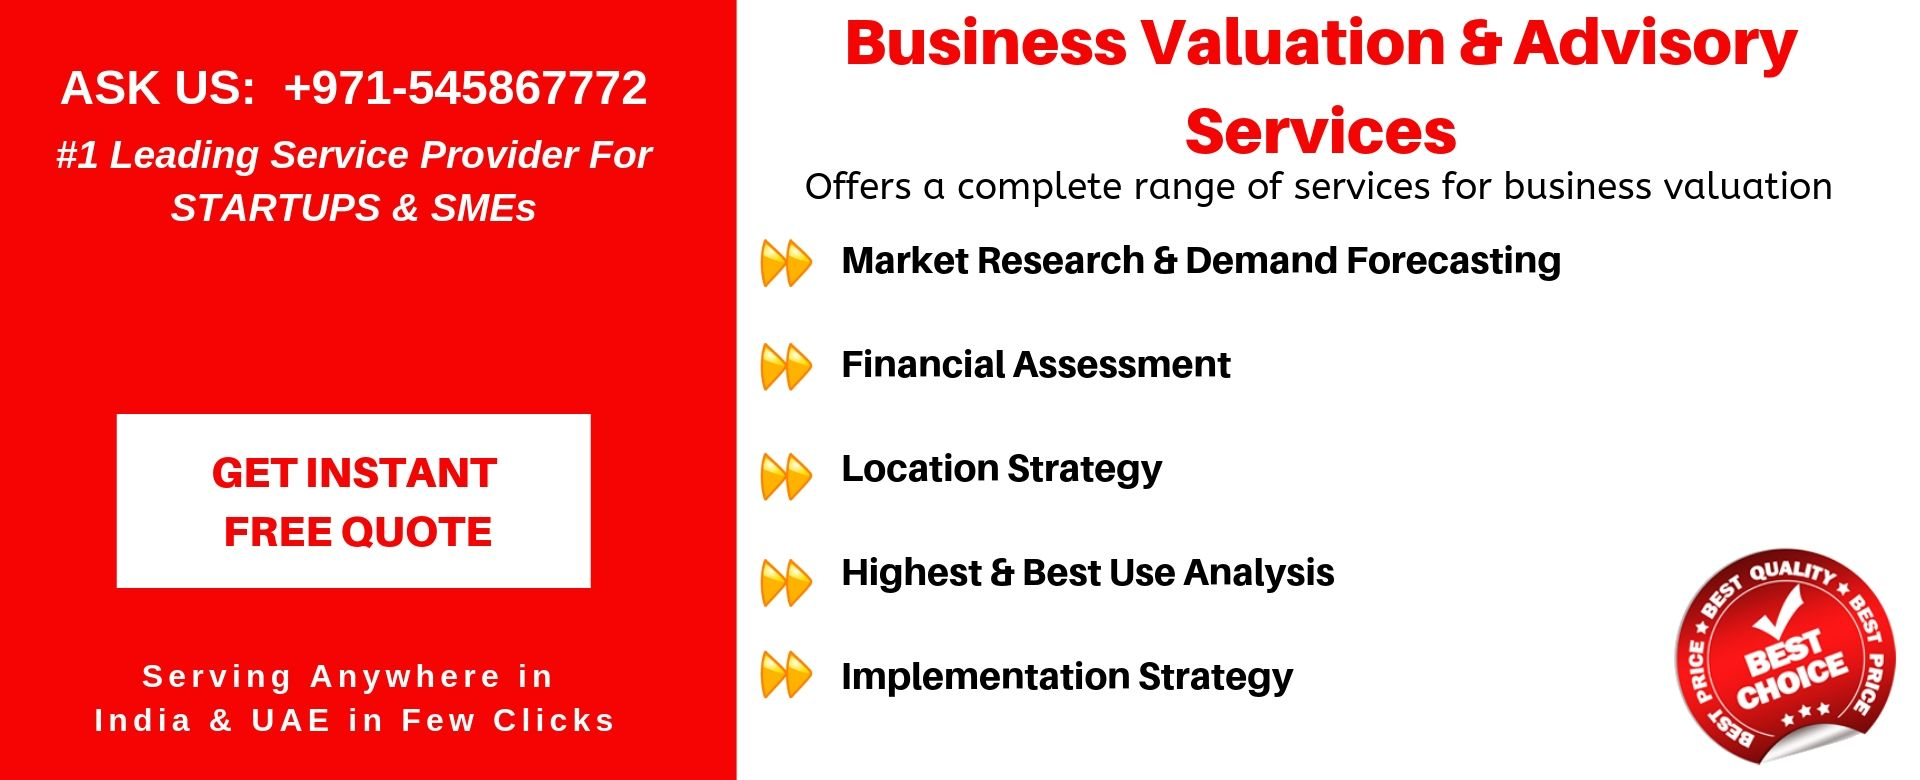 business valuation advisory services in uae